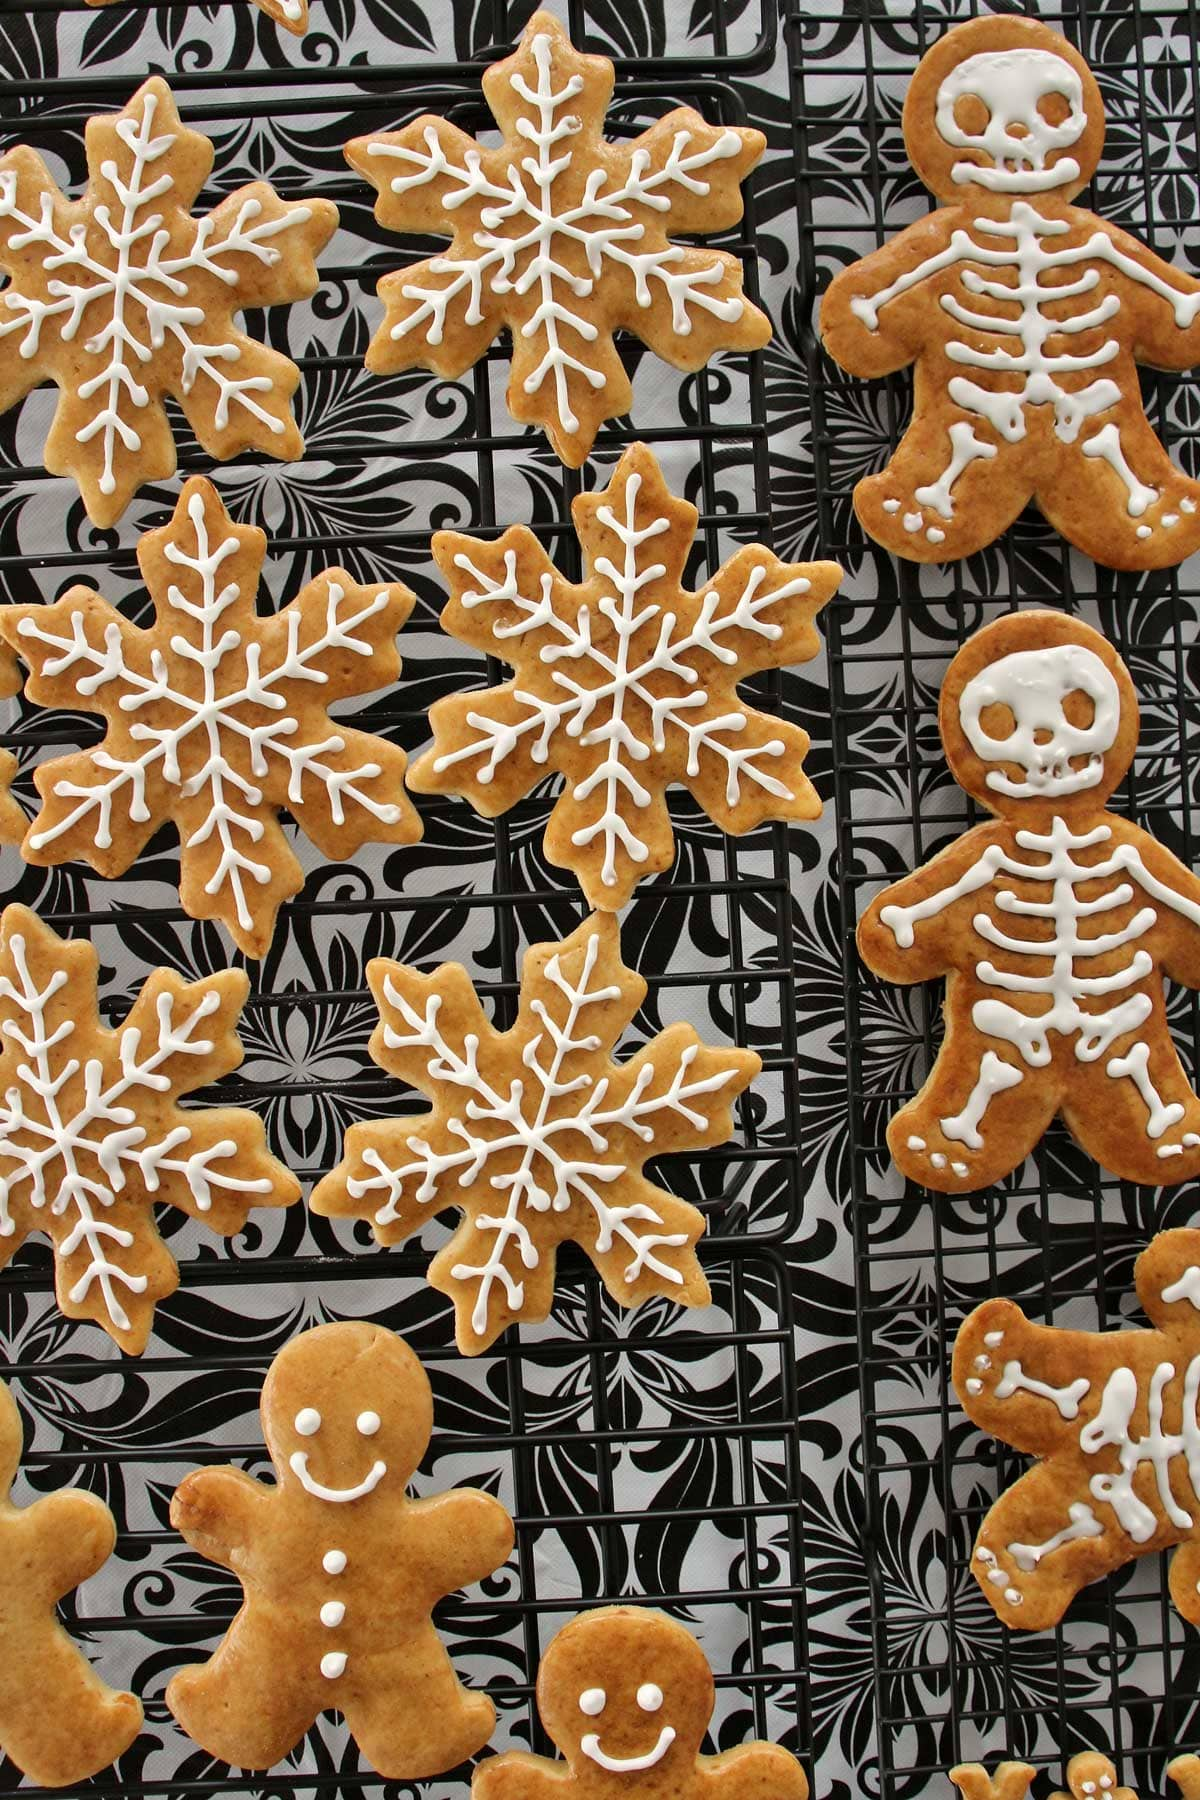 Czech gingerbread cookies decorated with royal icing on a cooling rack.